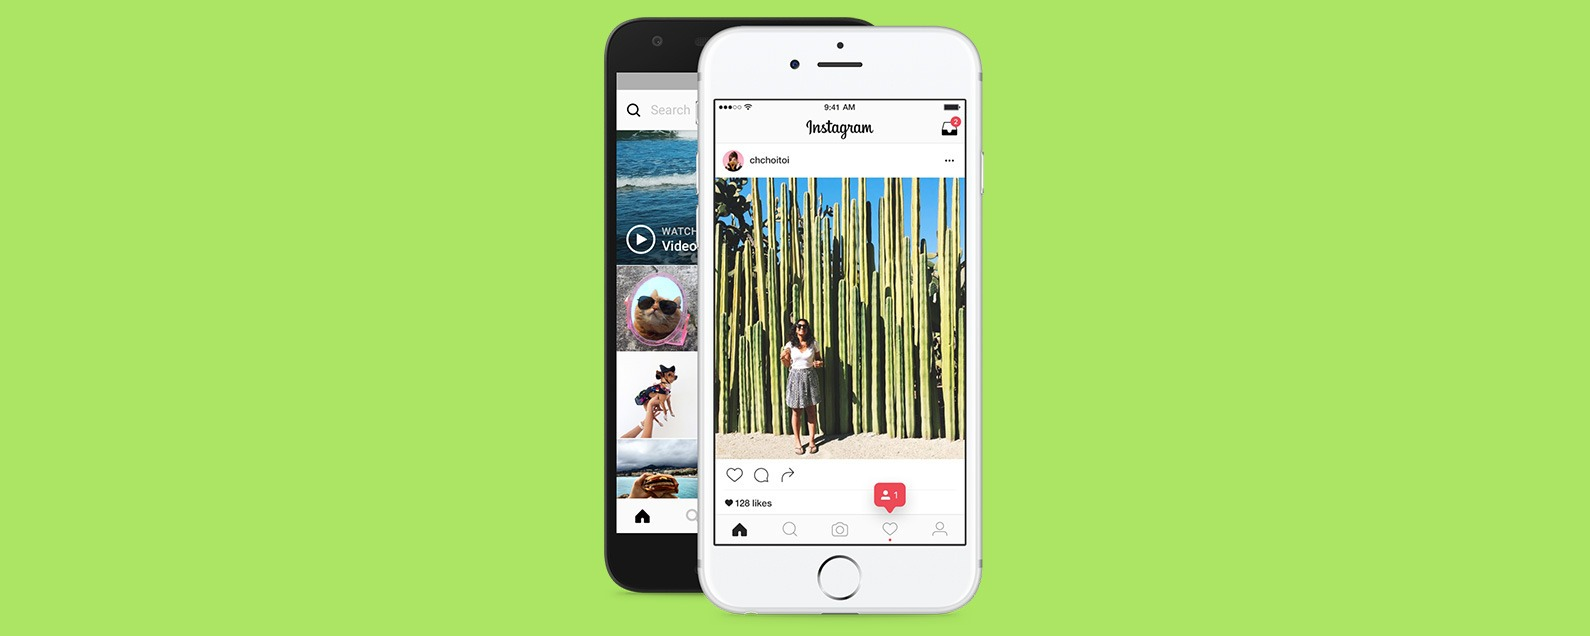 How to Delete or Deactivate an Instagram Account | iPhoneLife com